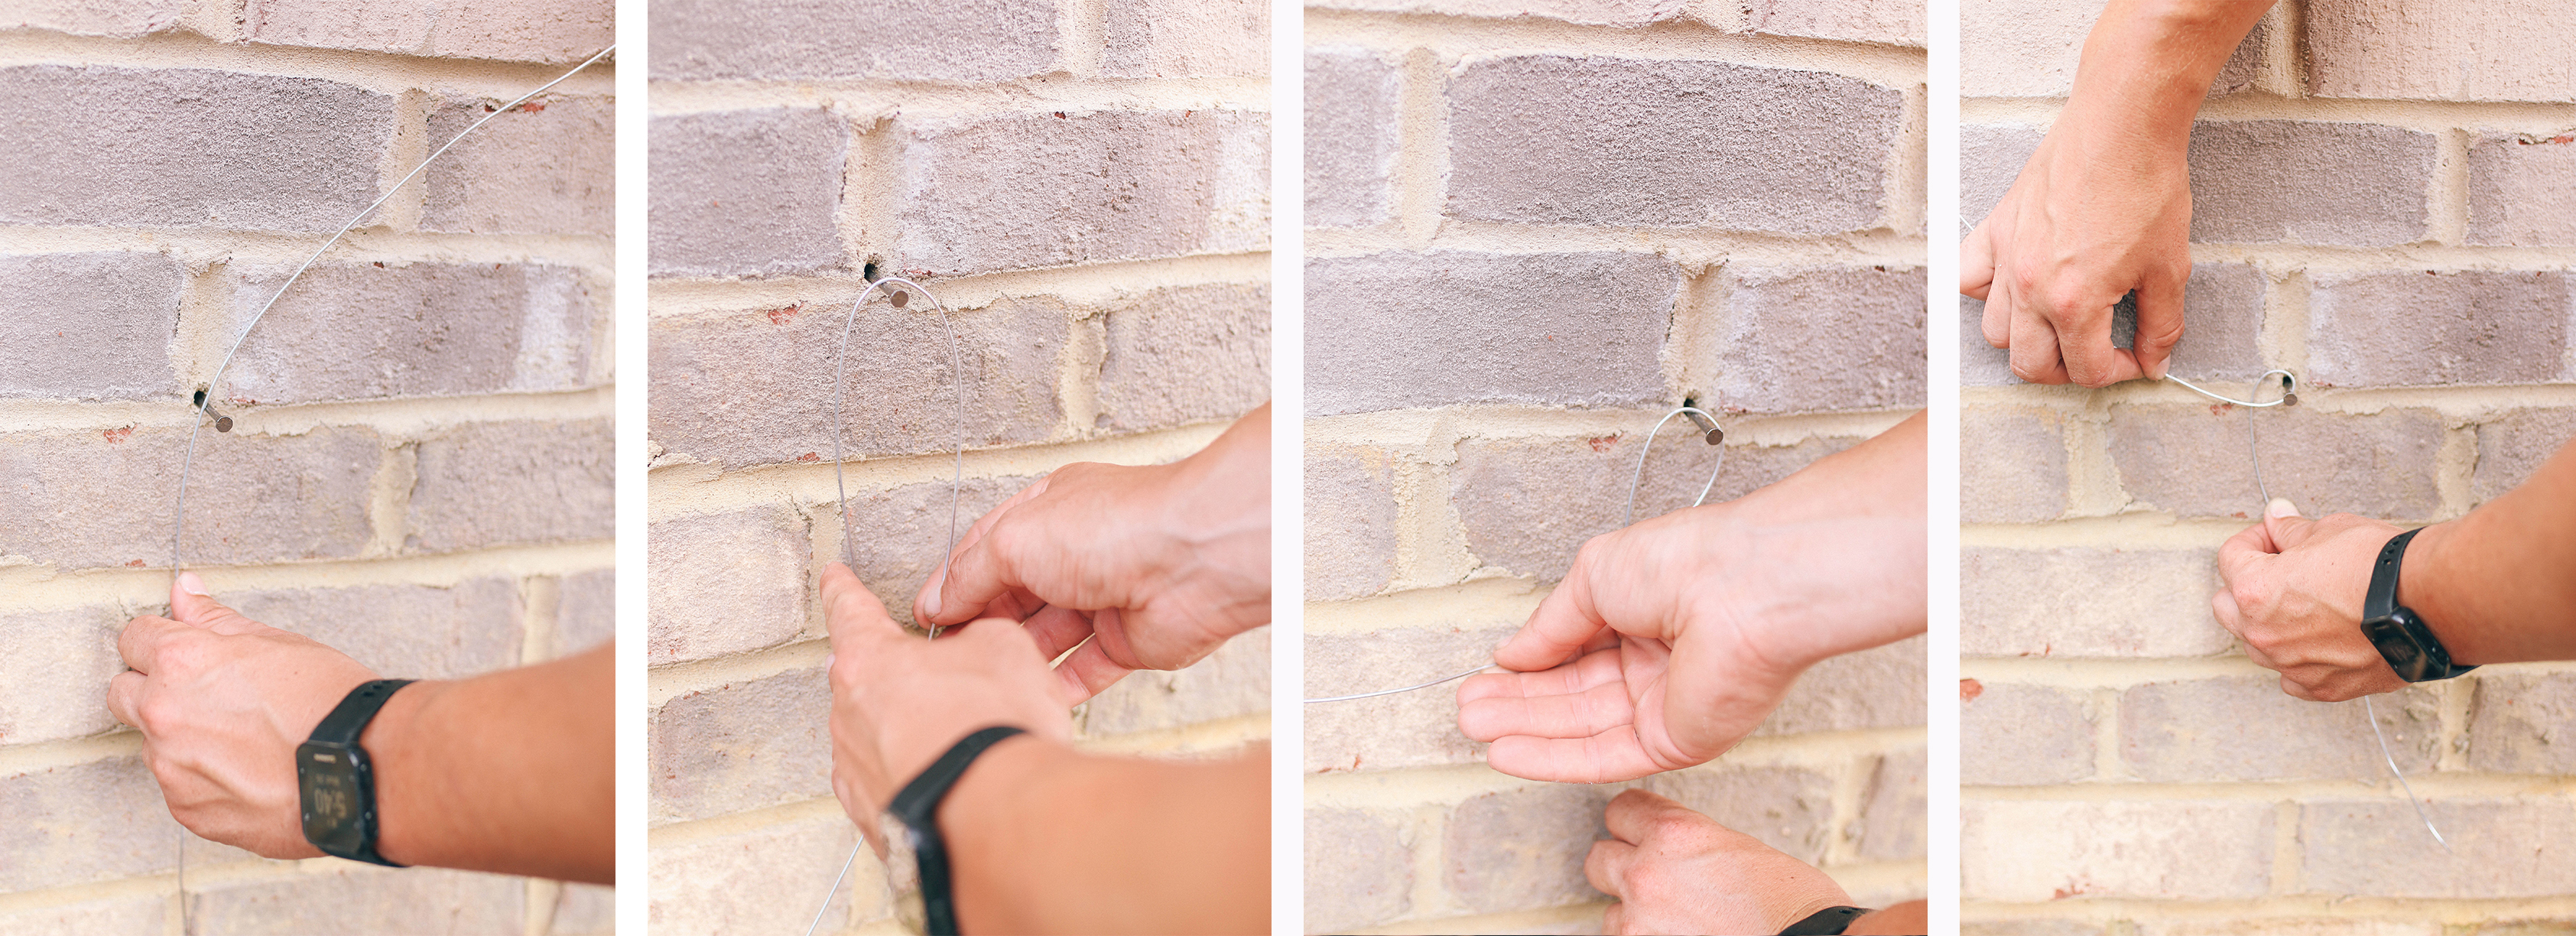 Step By Guide To Building A Garden Trellis Style Souffle Wiring In Brick Wall Taking The Spool Of Wire Pull It Tightly And Extend Nail Number 2 Wrap Several Times Around Clockwise Direction